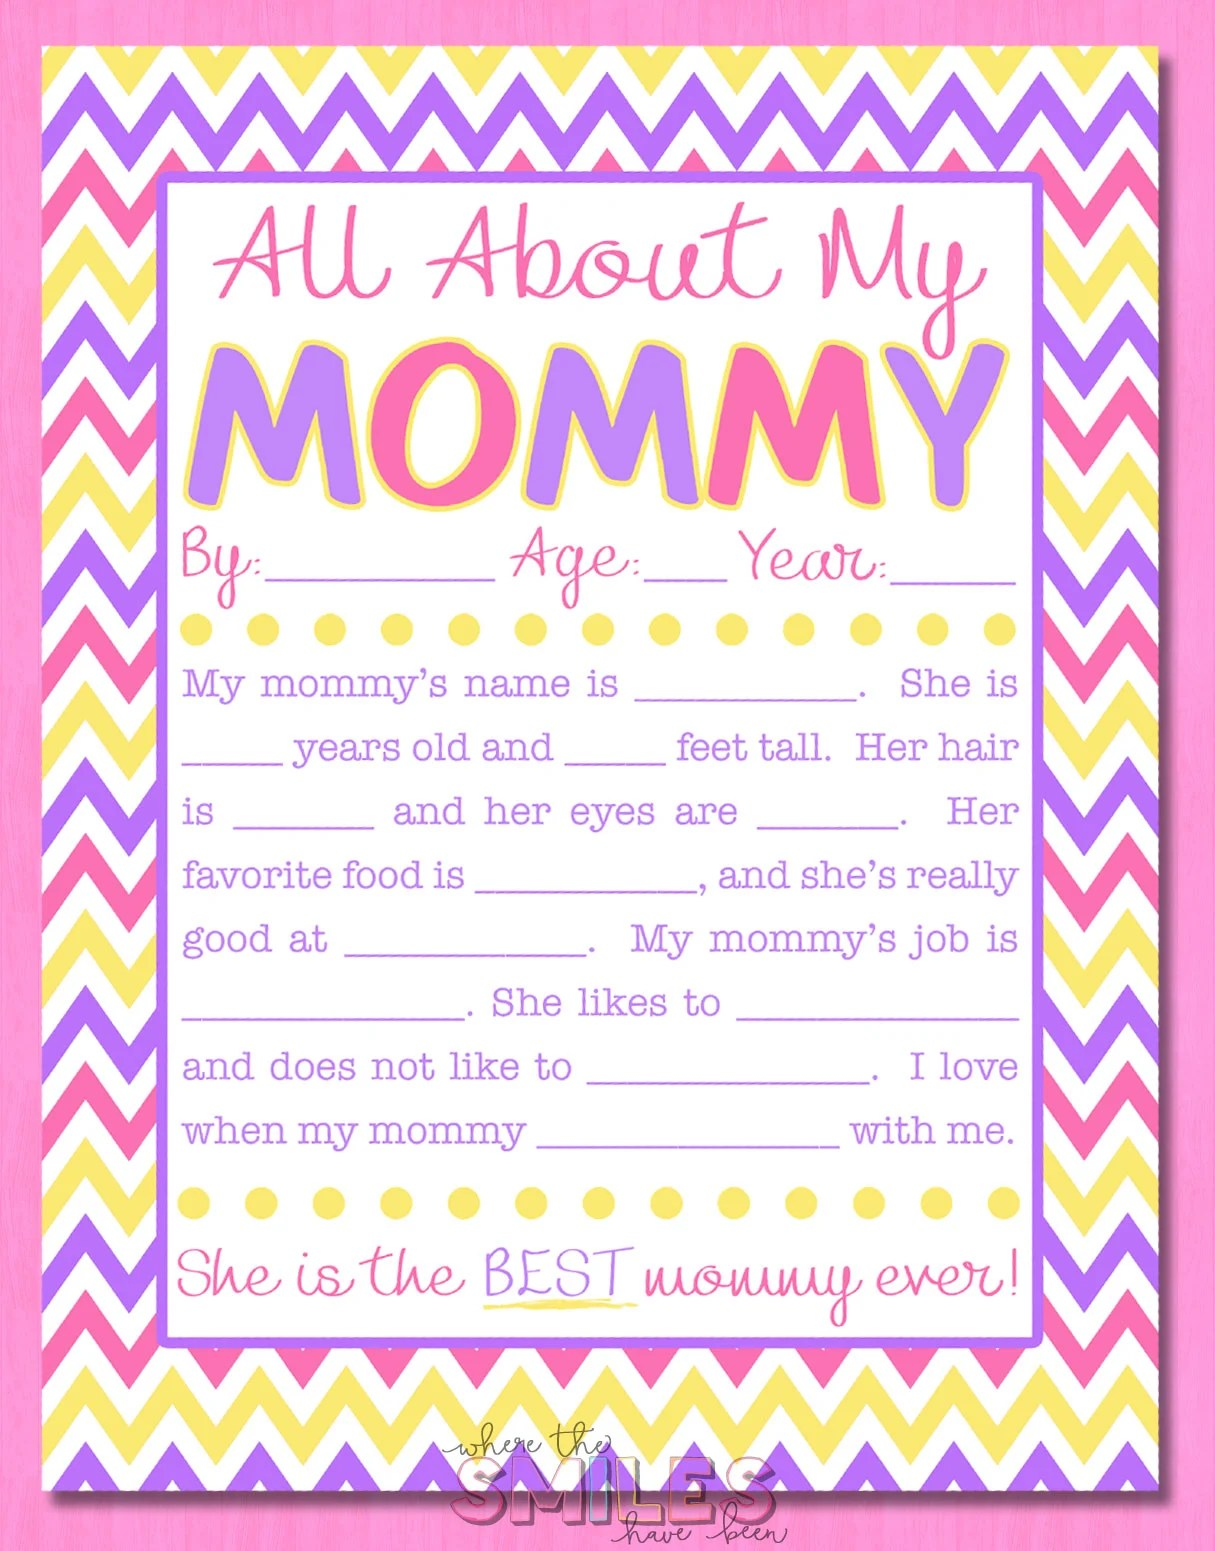 picture about All About My Mom Printable referred to as All Concerning My Mommy Job interview with Absolutely free Printable!